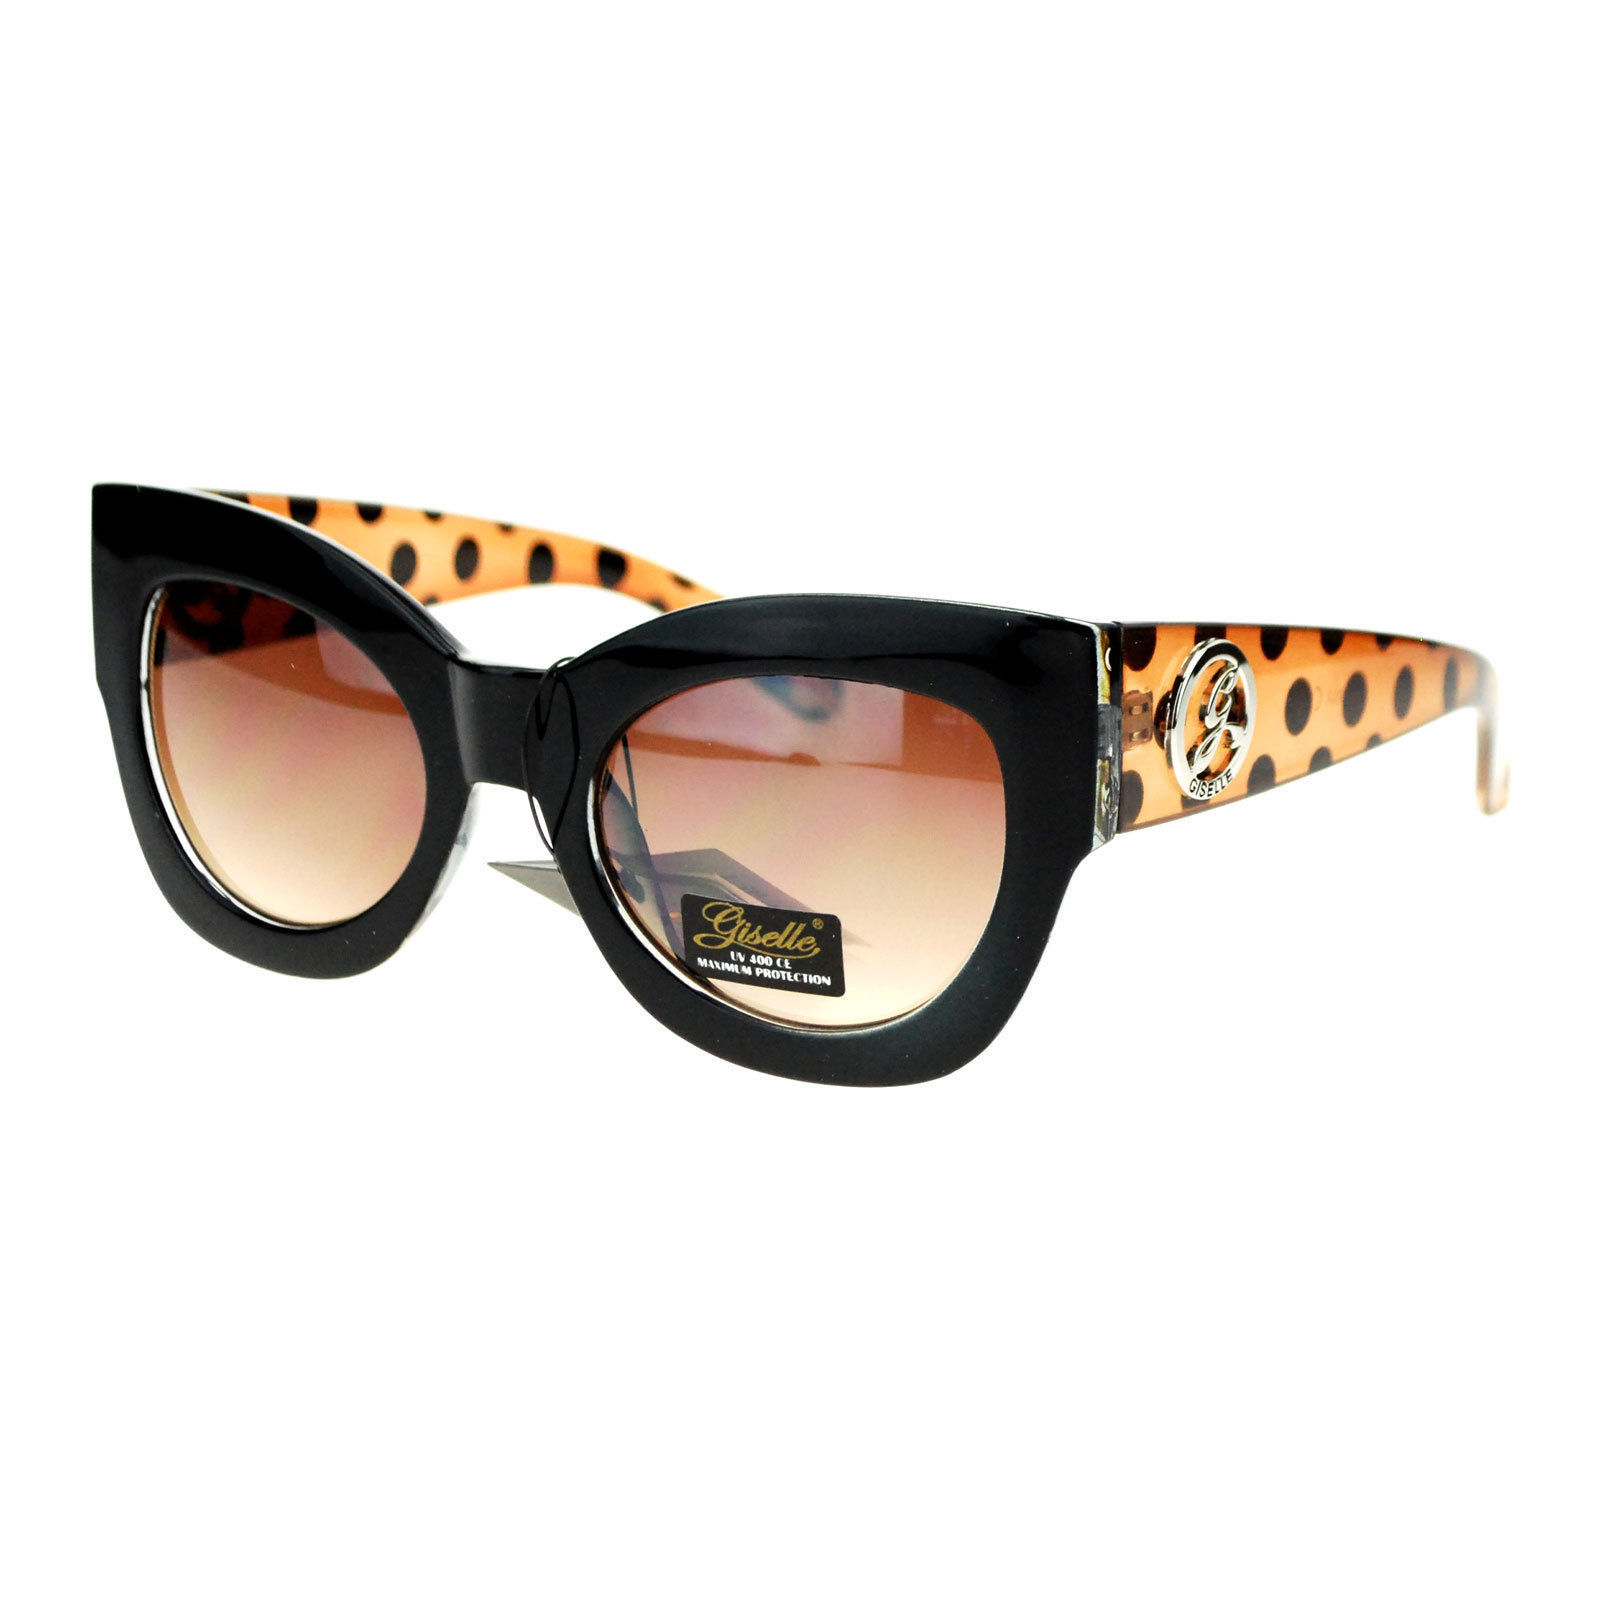 Giselle Lunettes Women's Sunglasses Polka Dots Round Butterfly Frame